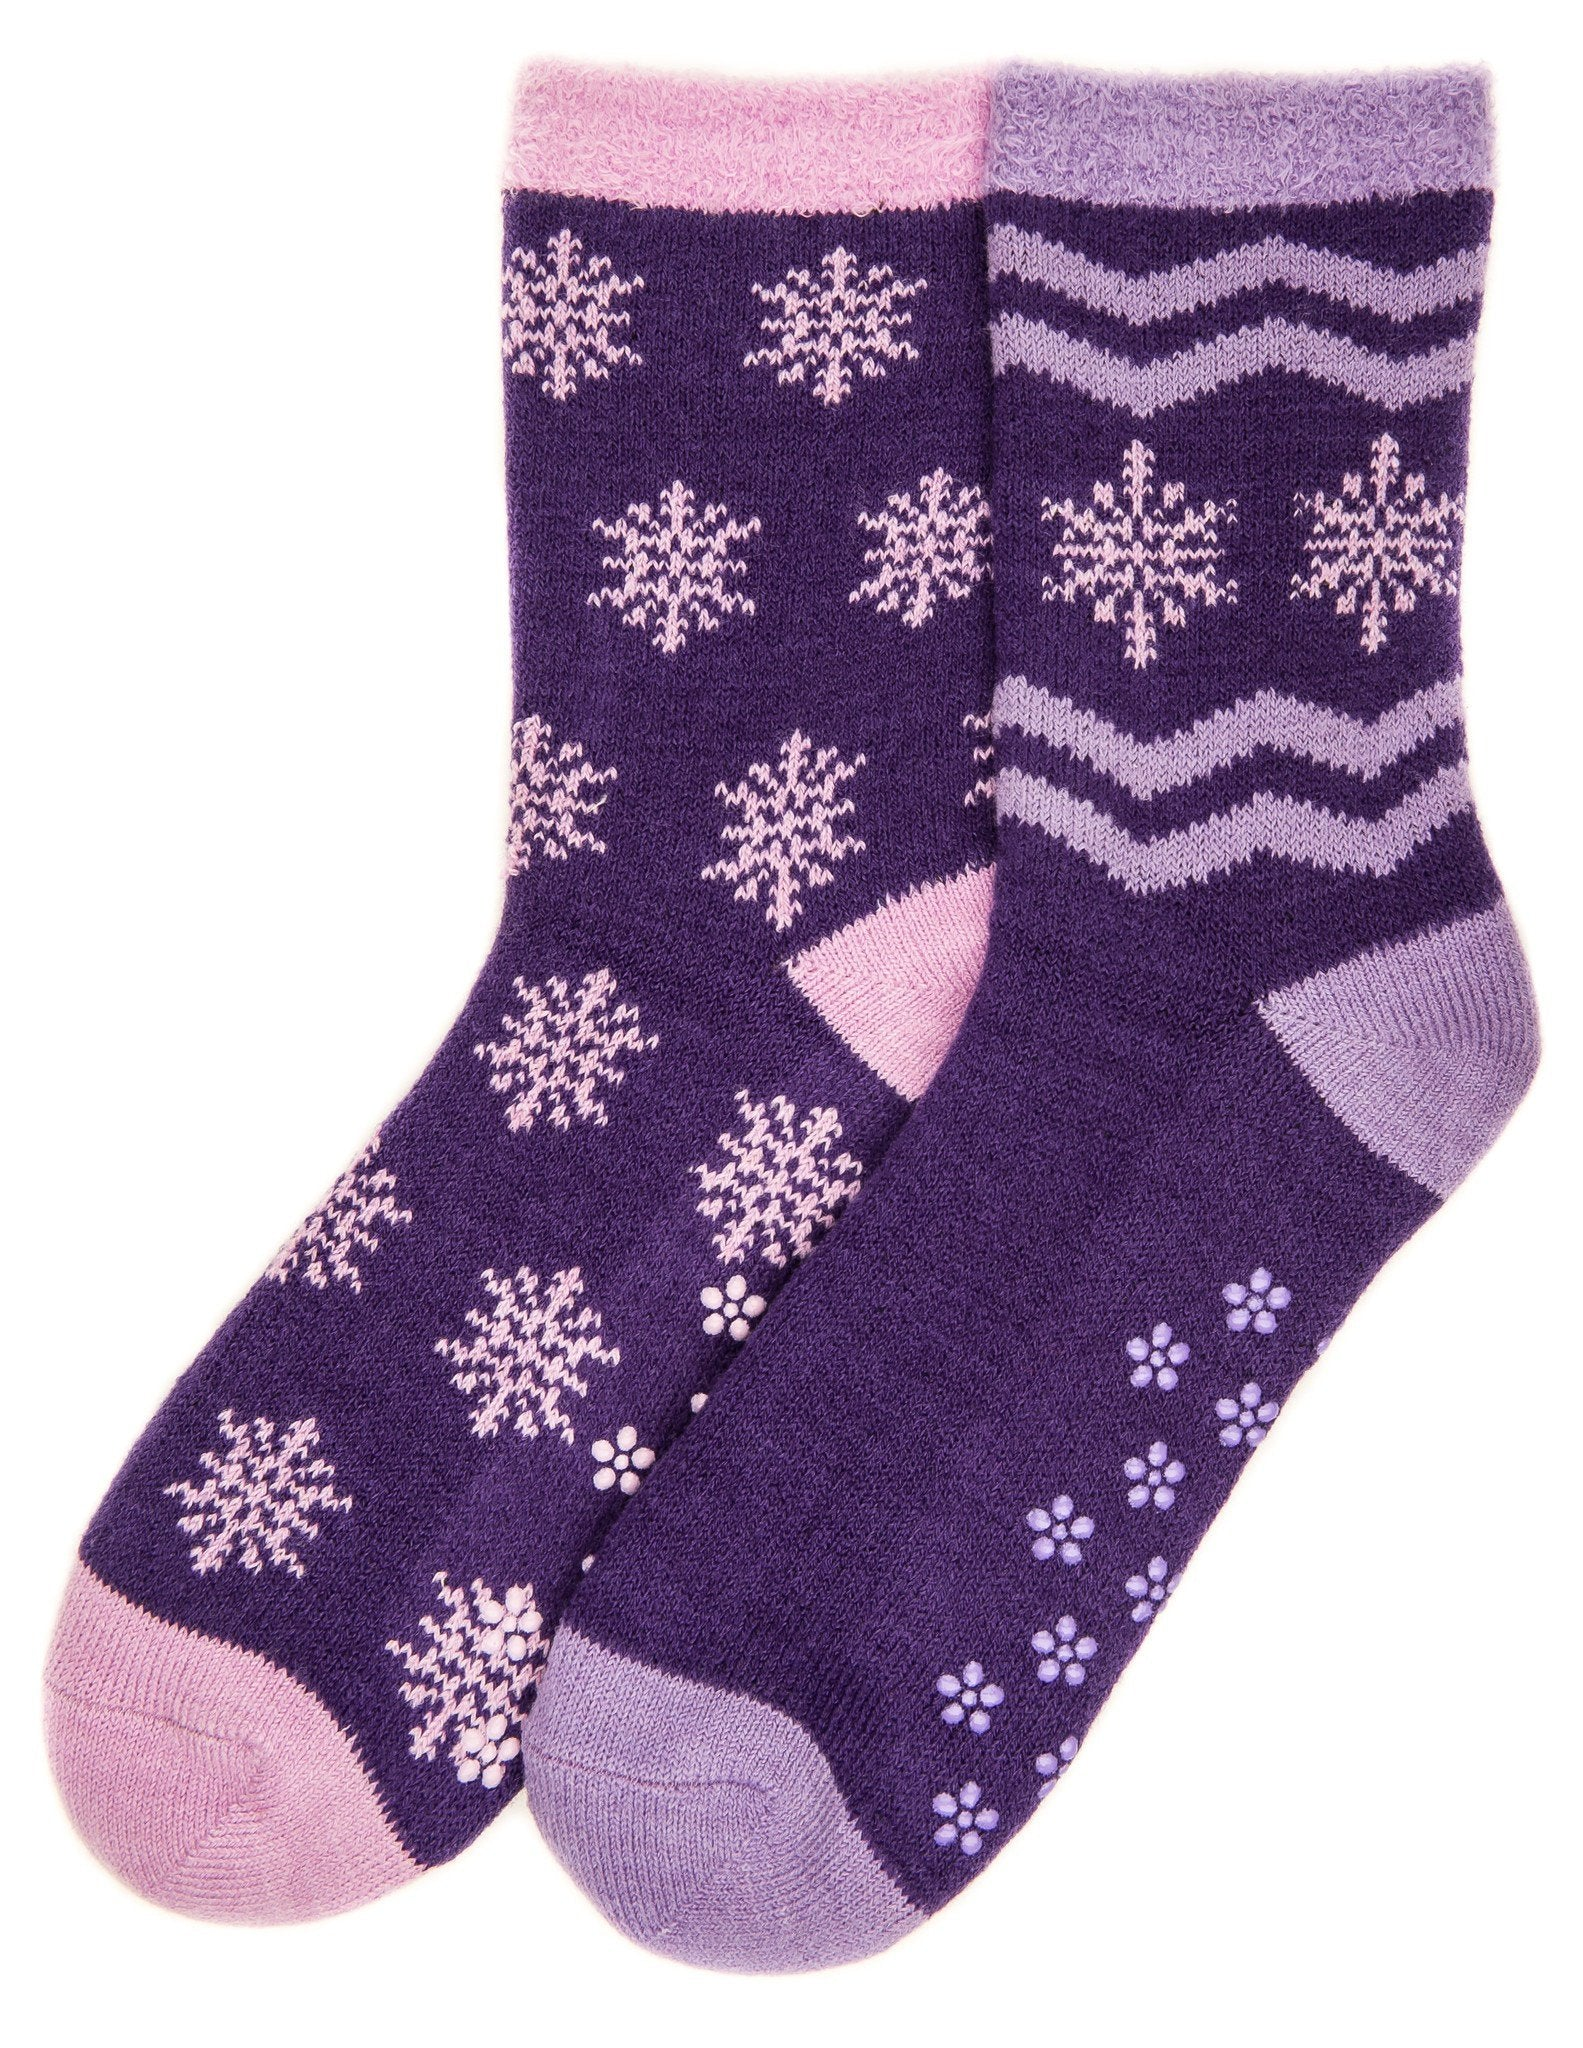 Women's Soft Premium Double Layer Winter Crew Socks - 2 Pairs - Set A5